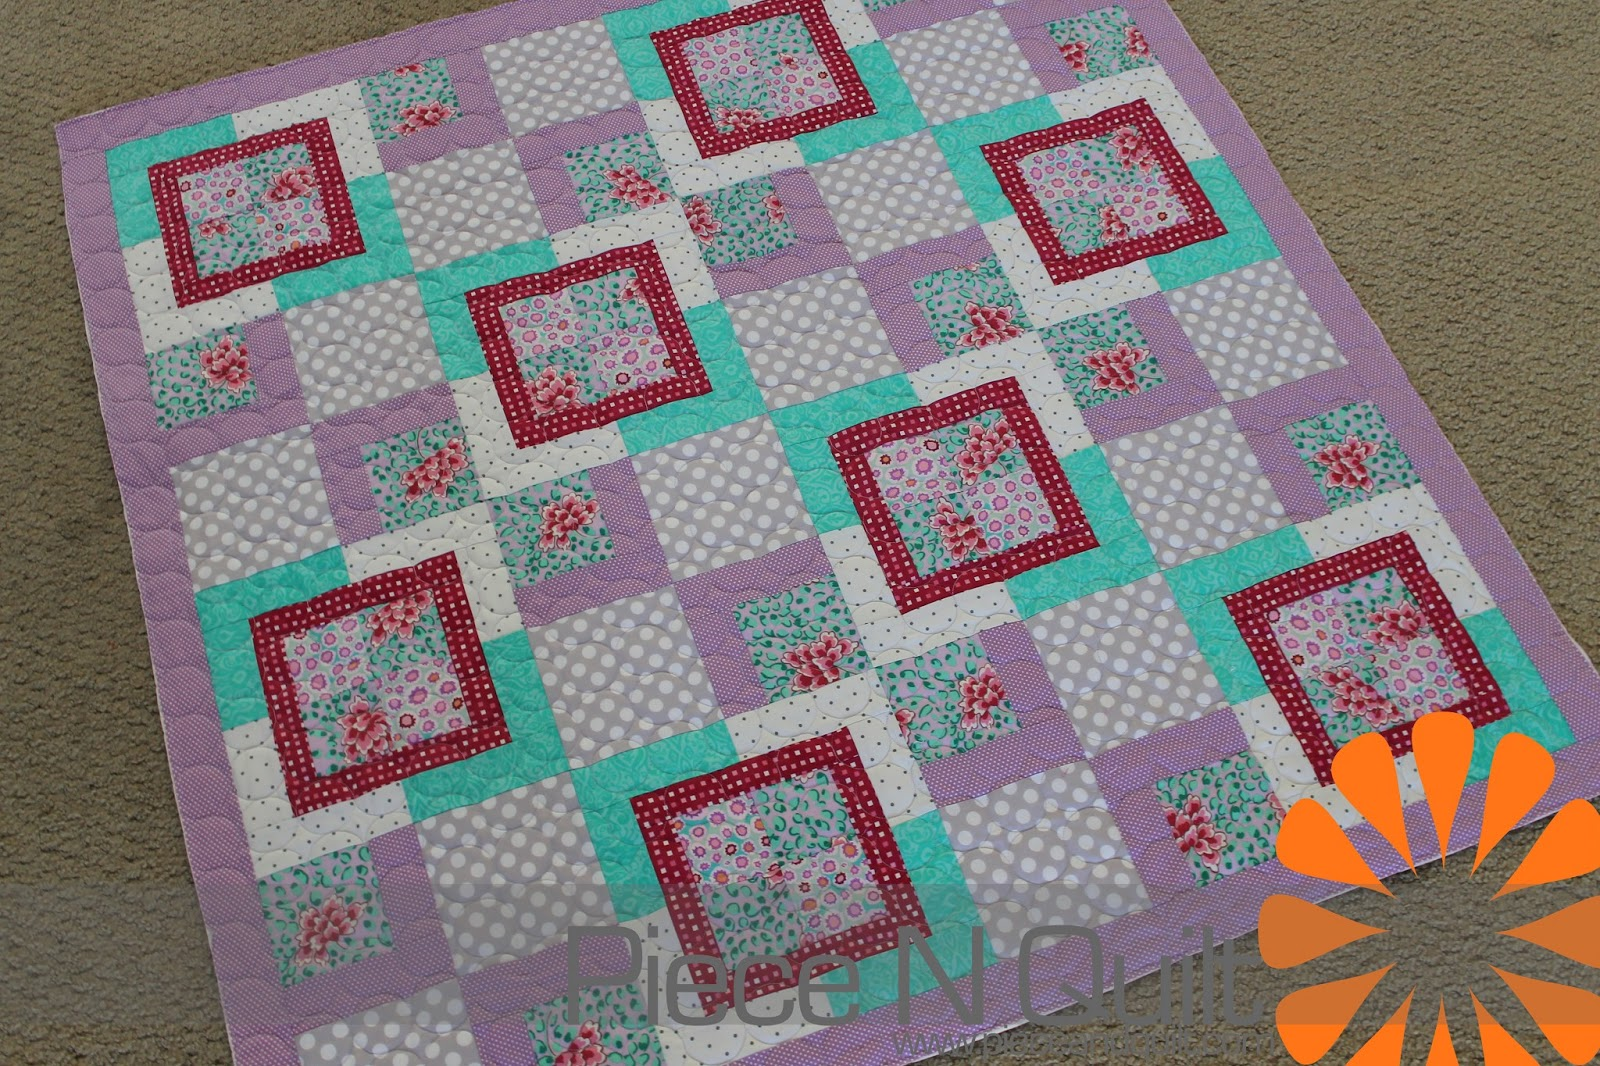 Quilt Patterns For A Girl : Piece N Quilt: Baby Girl Quilt